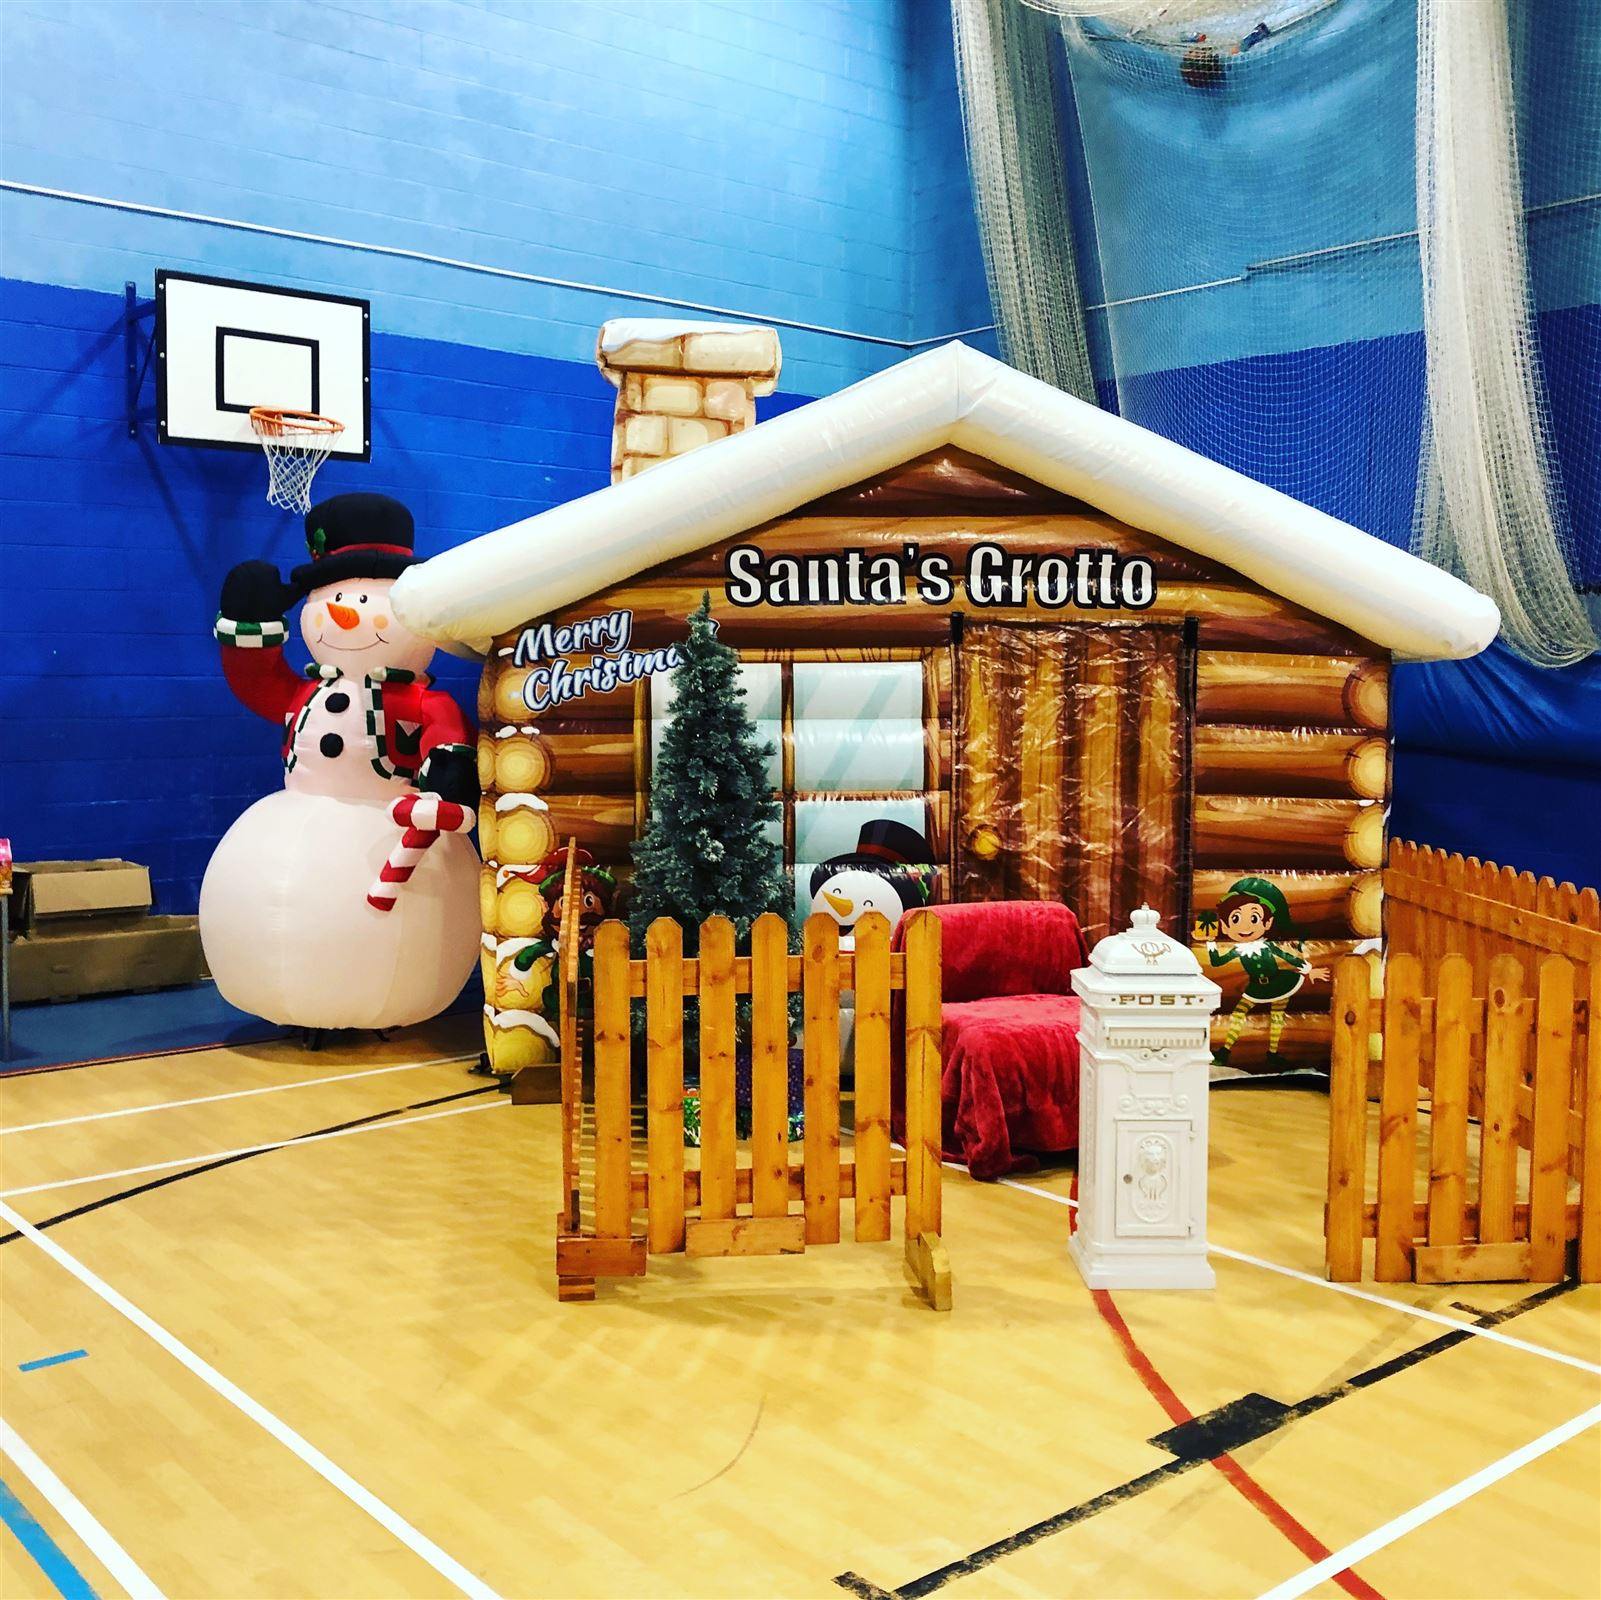 Santa Grotto Hire Jm Entertainment